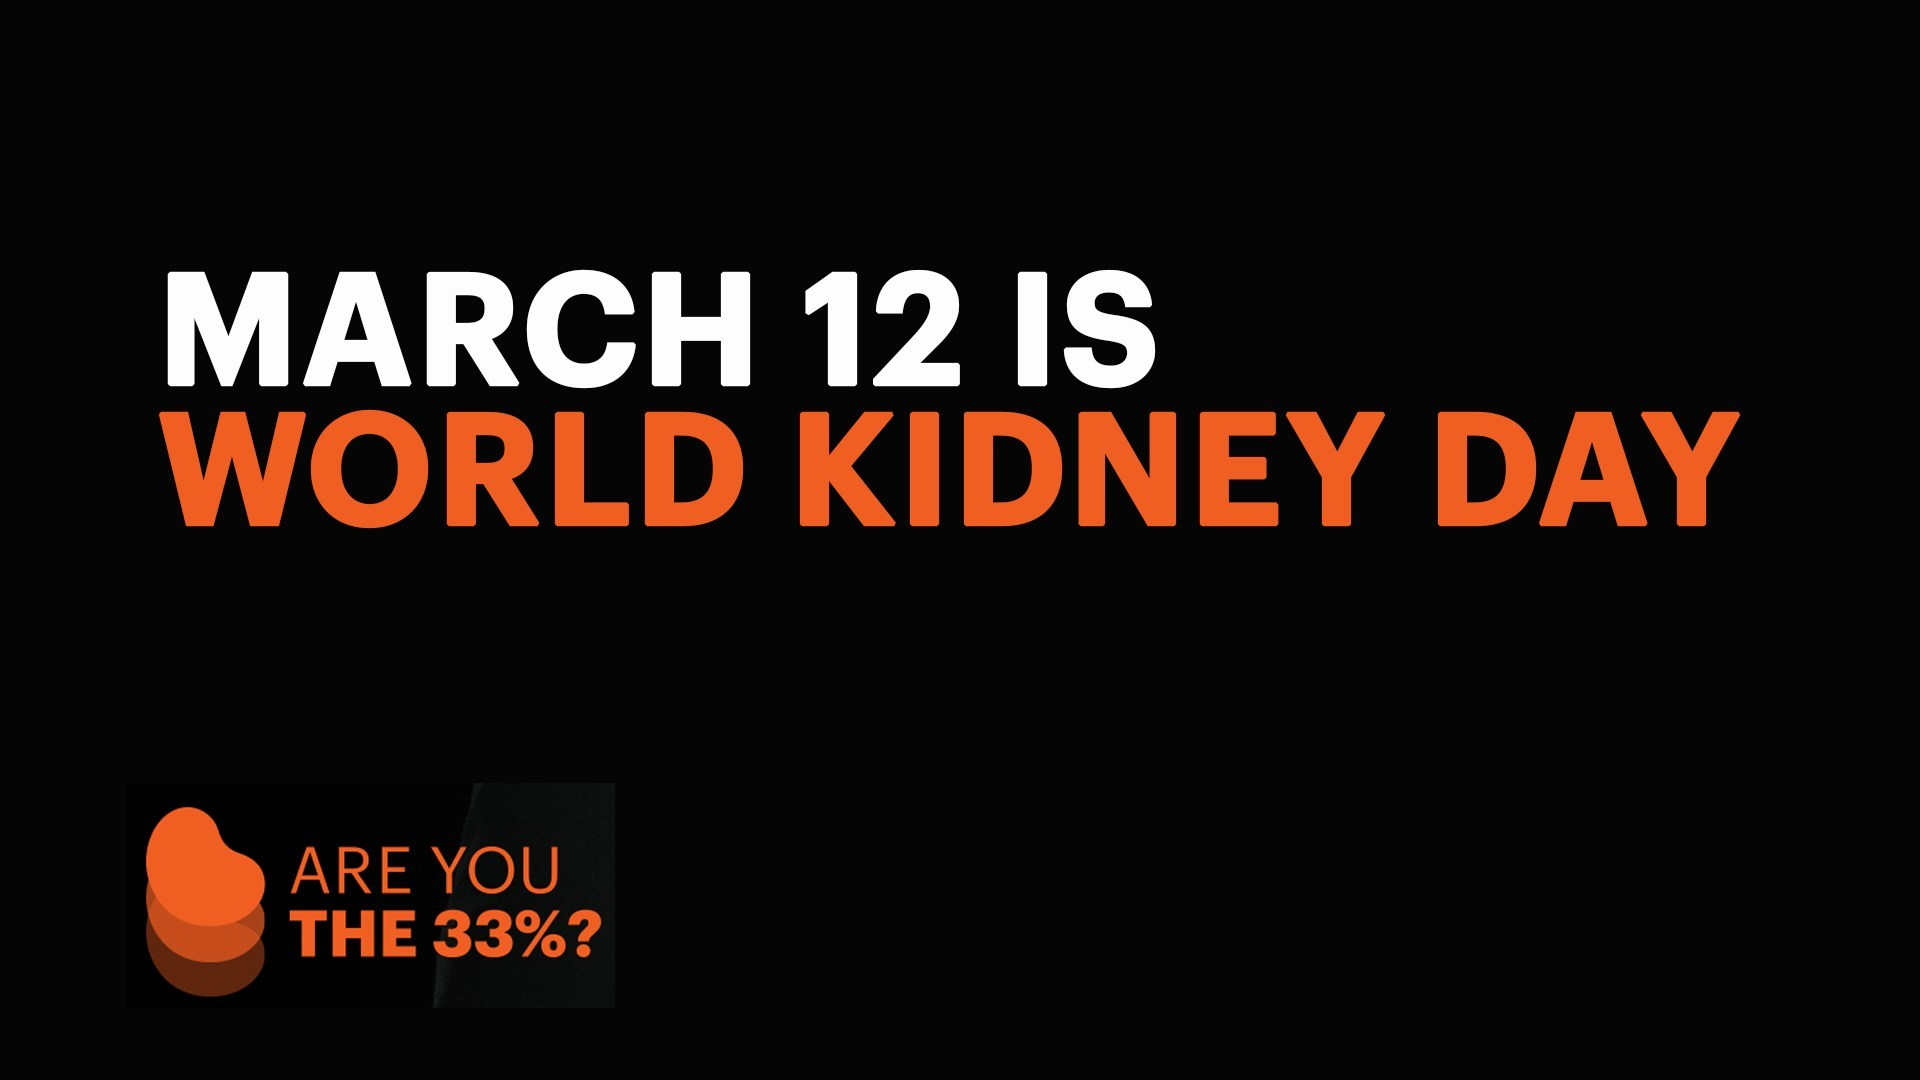 National Kidney Foundation Observes World Kidney Day By Asking Are You The 33